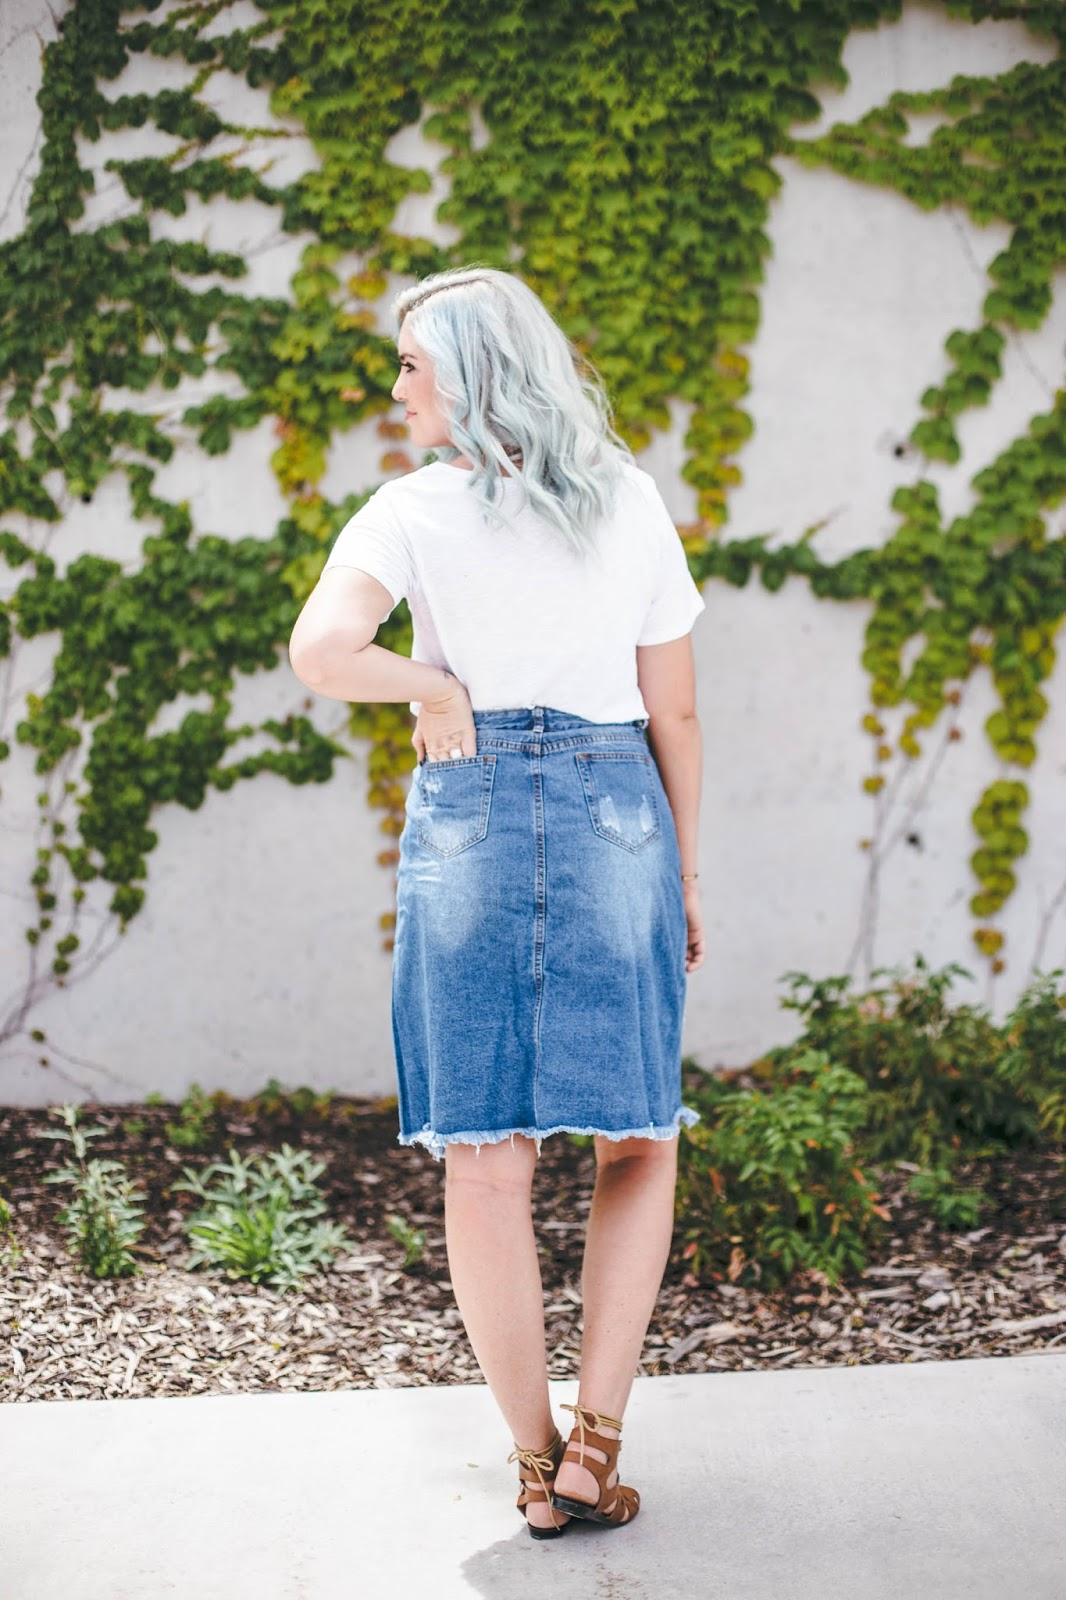 Summer outfit, Utah Fashion Blogger, Modesty